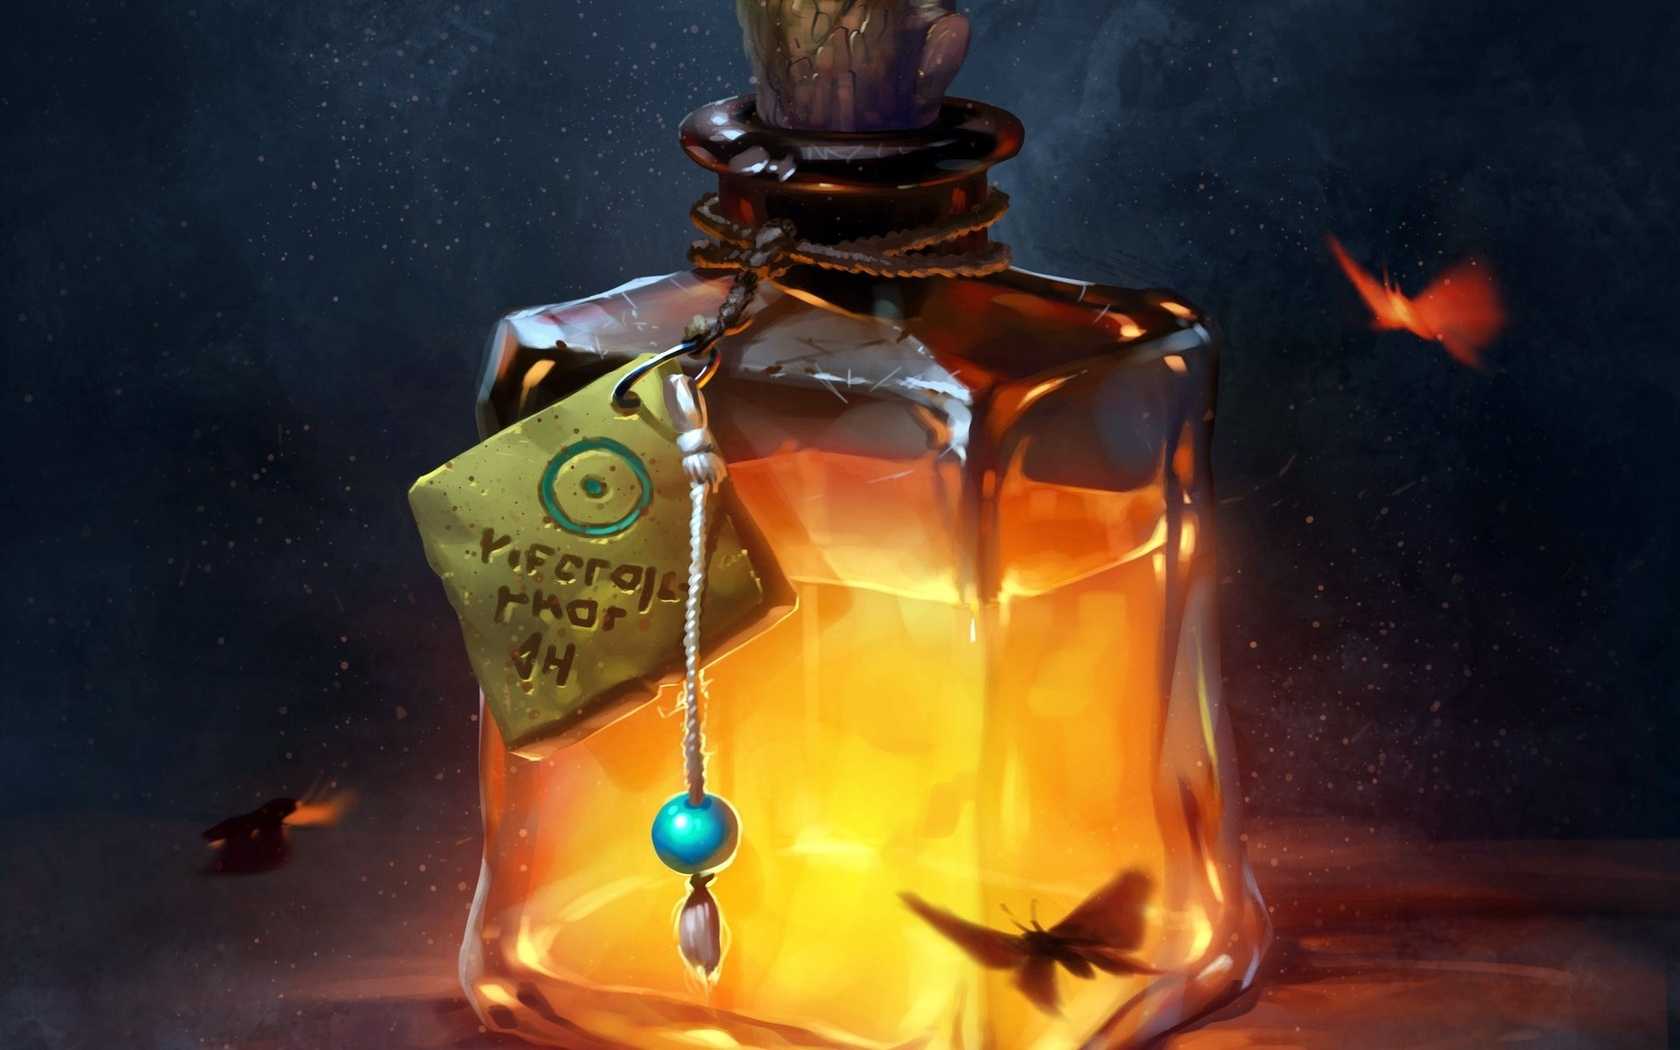 fantasy, fire, bottle, fantasy art, digital art, liquid, otion, butterflies, artwork